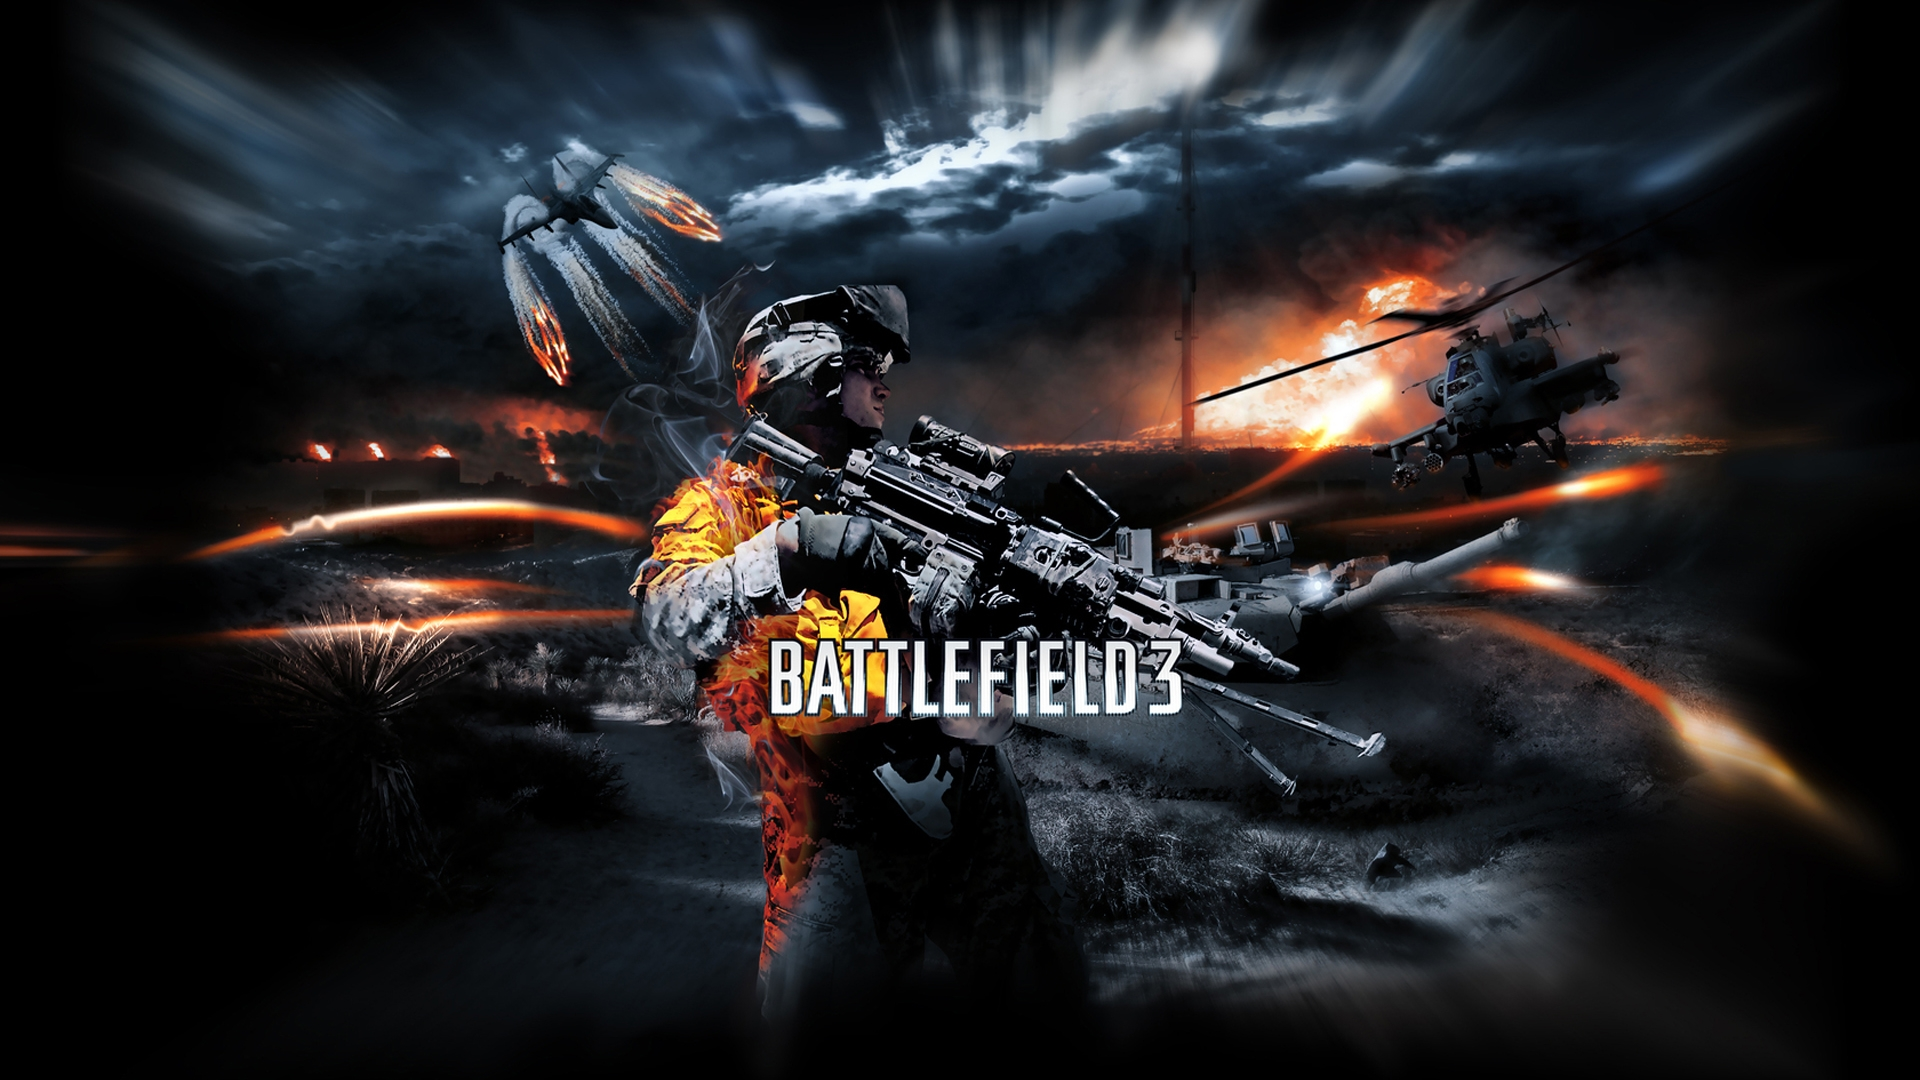 ... Wallpaper Abyss Everything Battlefield Video Game Battlefield 3 283380